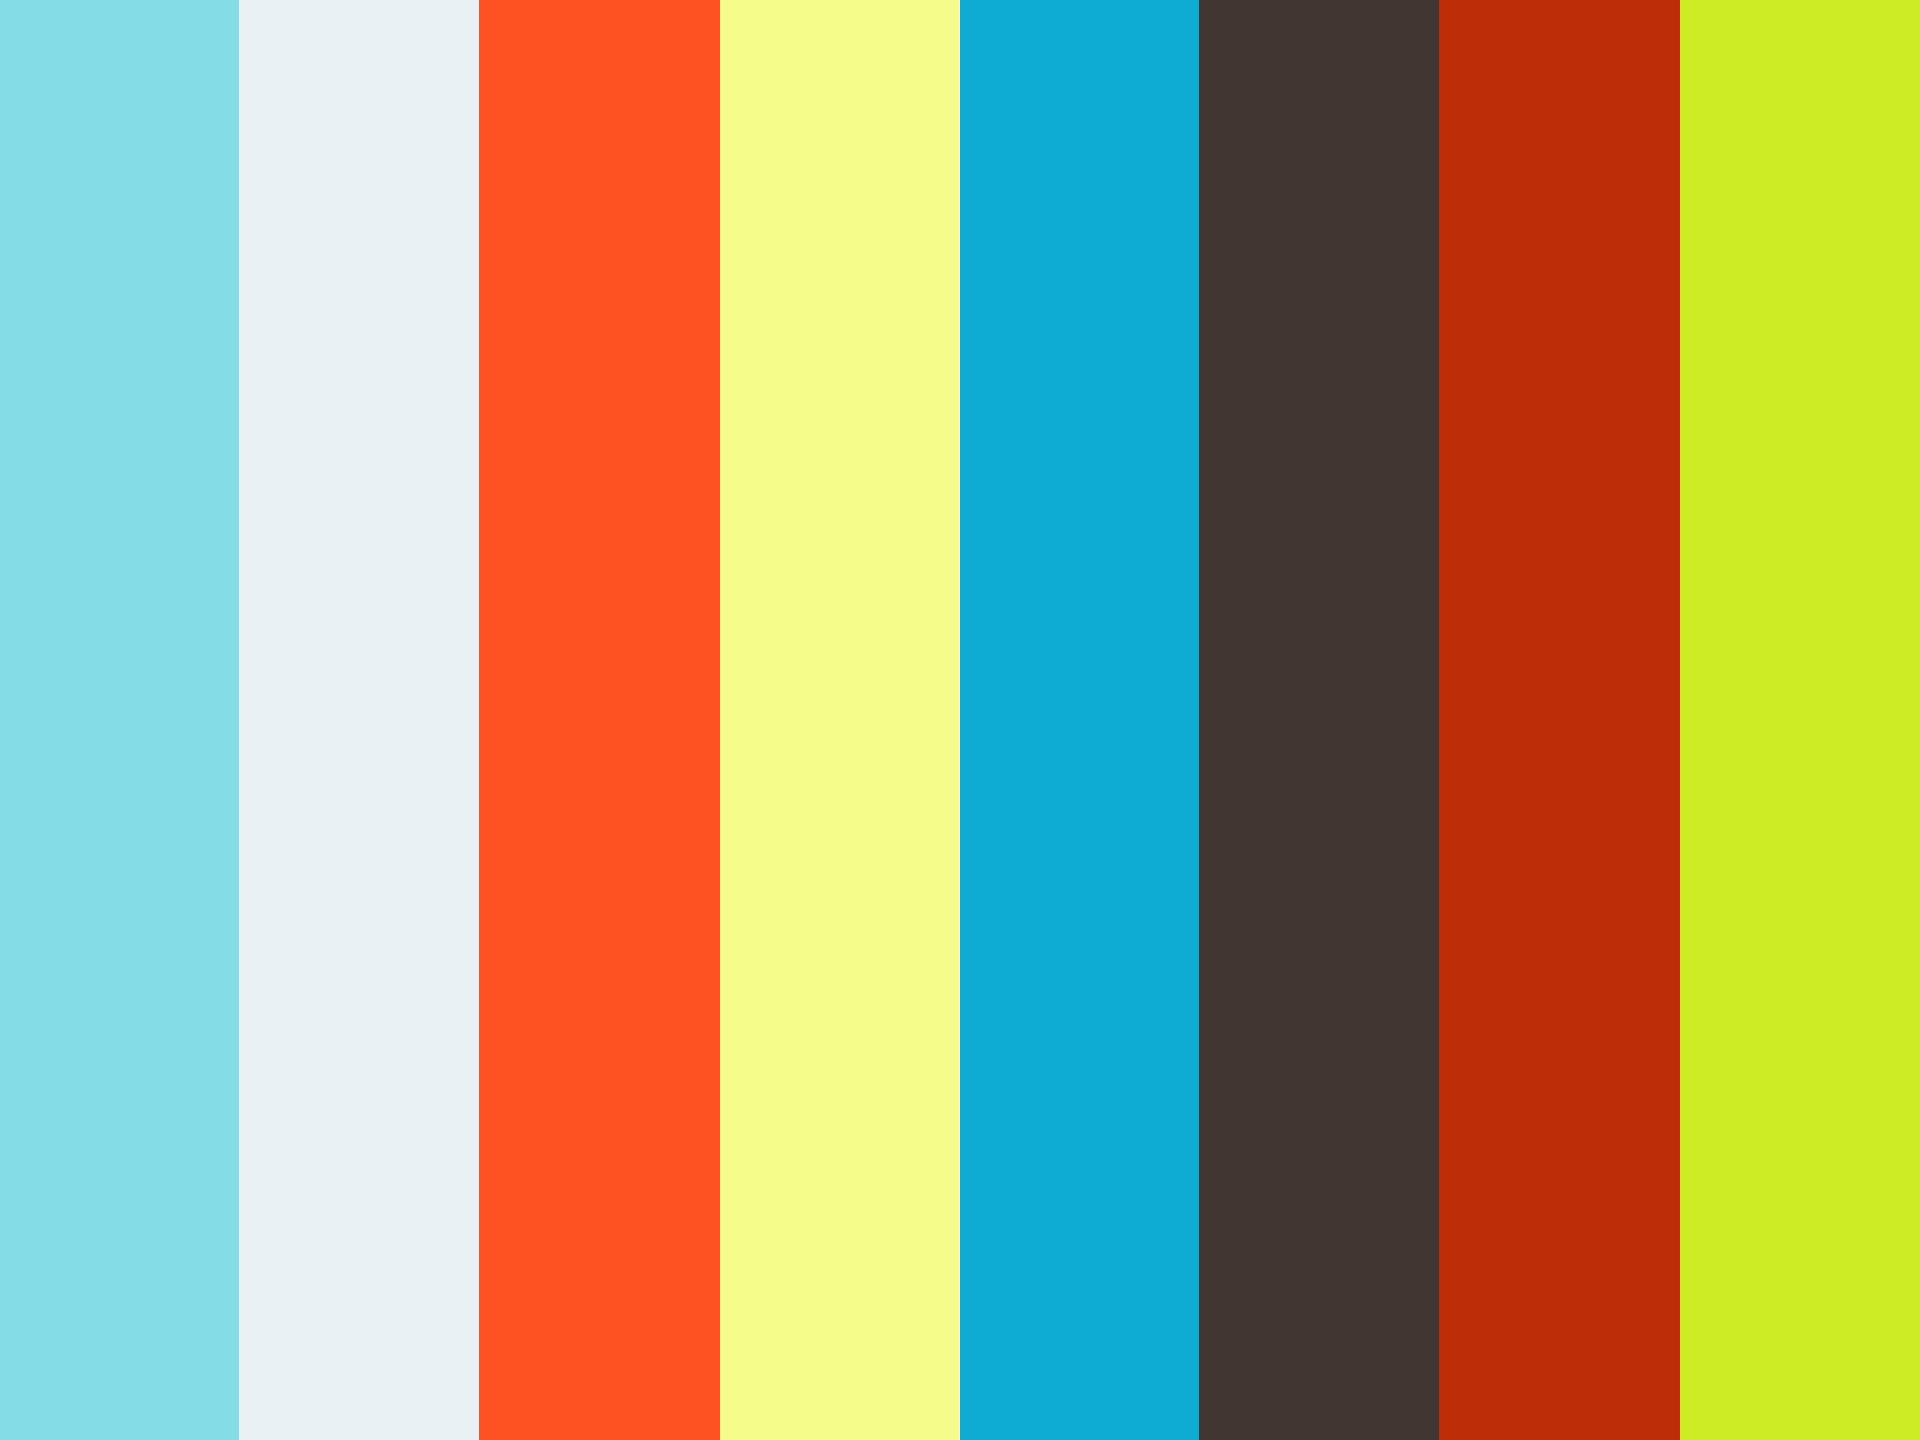 bbc lifestyle asia - the hairy bikers asian adventure 30s on vimeo